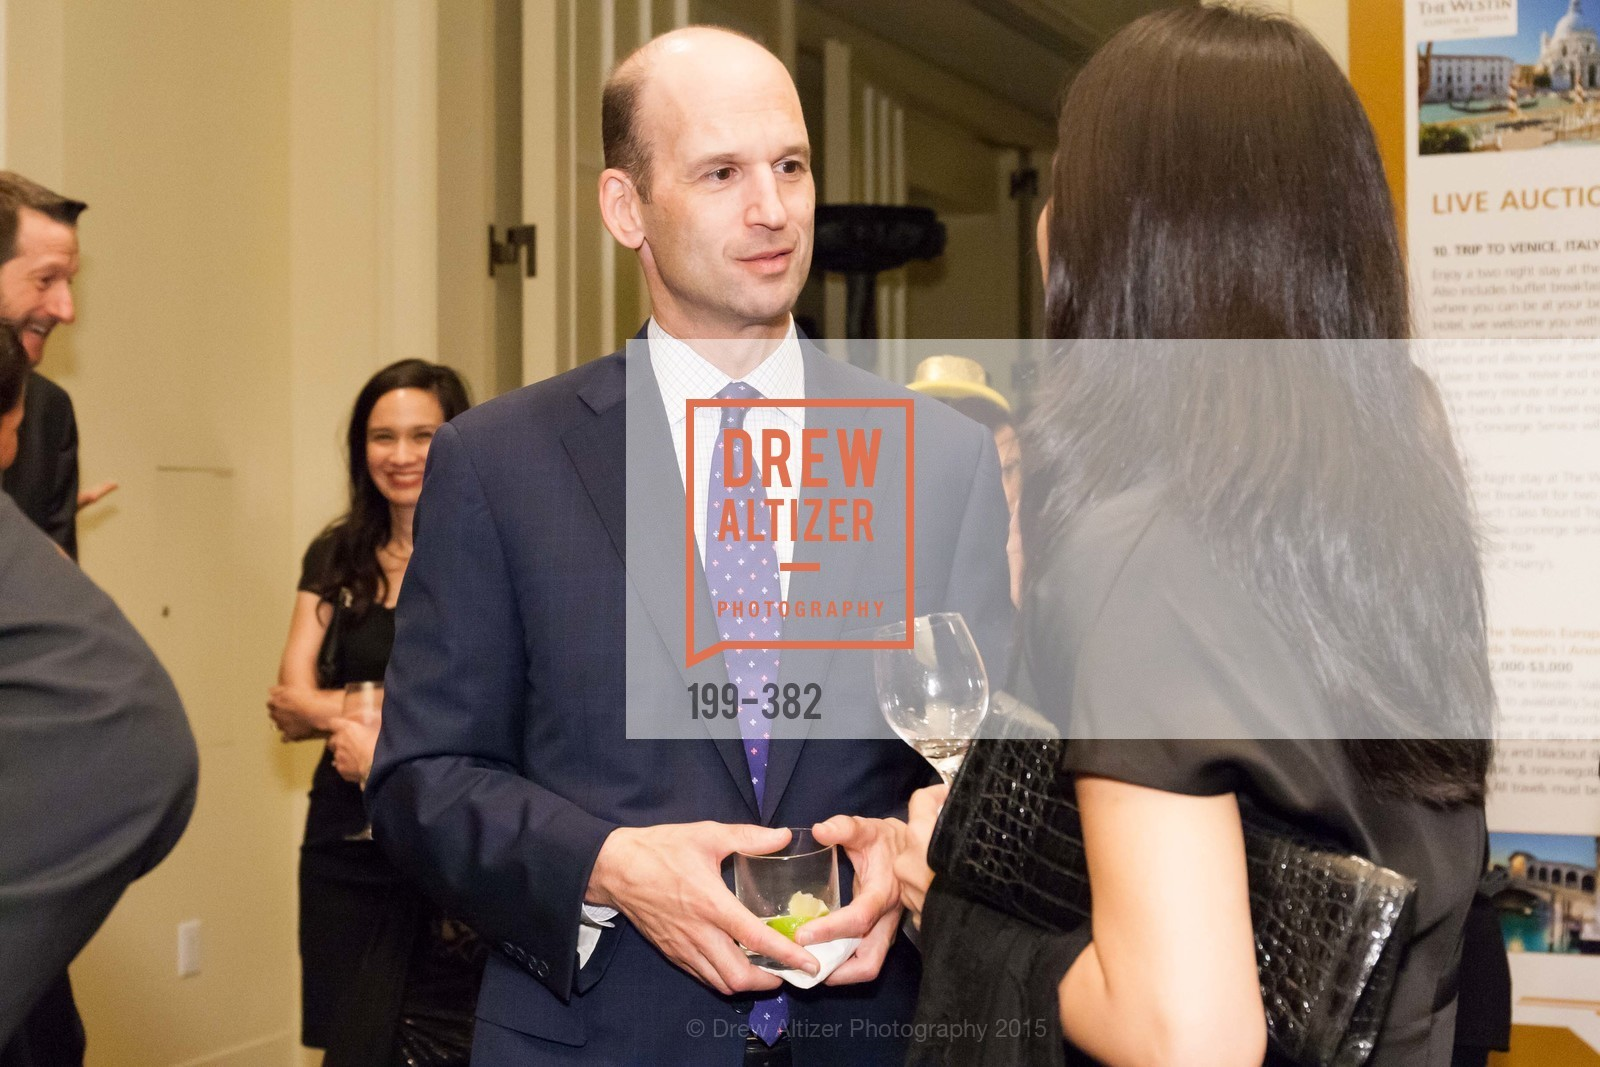 Extras, American Cancer Society San Francisco Soiree, October 15th, 2015, Photo,Drew Altizer, Drew Altizer Photography, full-service event agency, private events, San Francisco photographer, photographer California